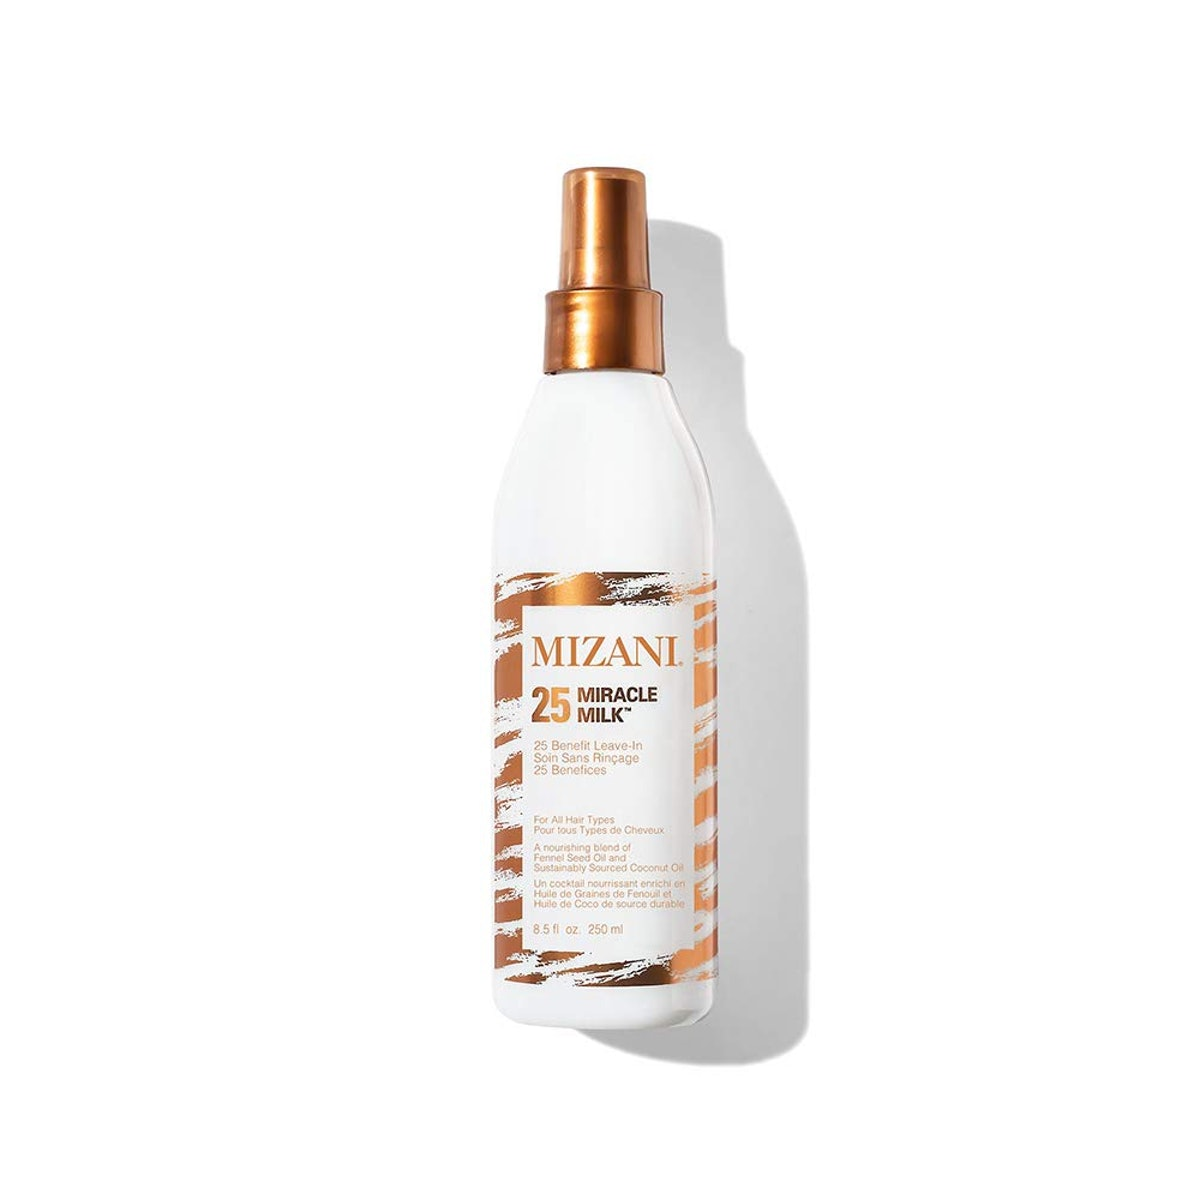 MIZANI 25 Miracle Milk Leave-In Conditioner, 8.5 Ounce